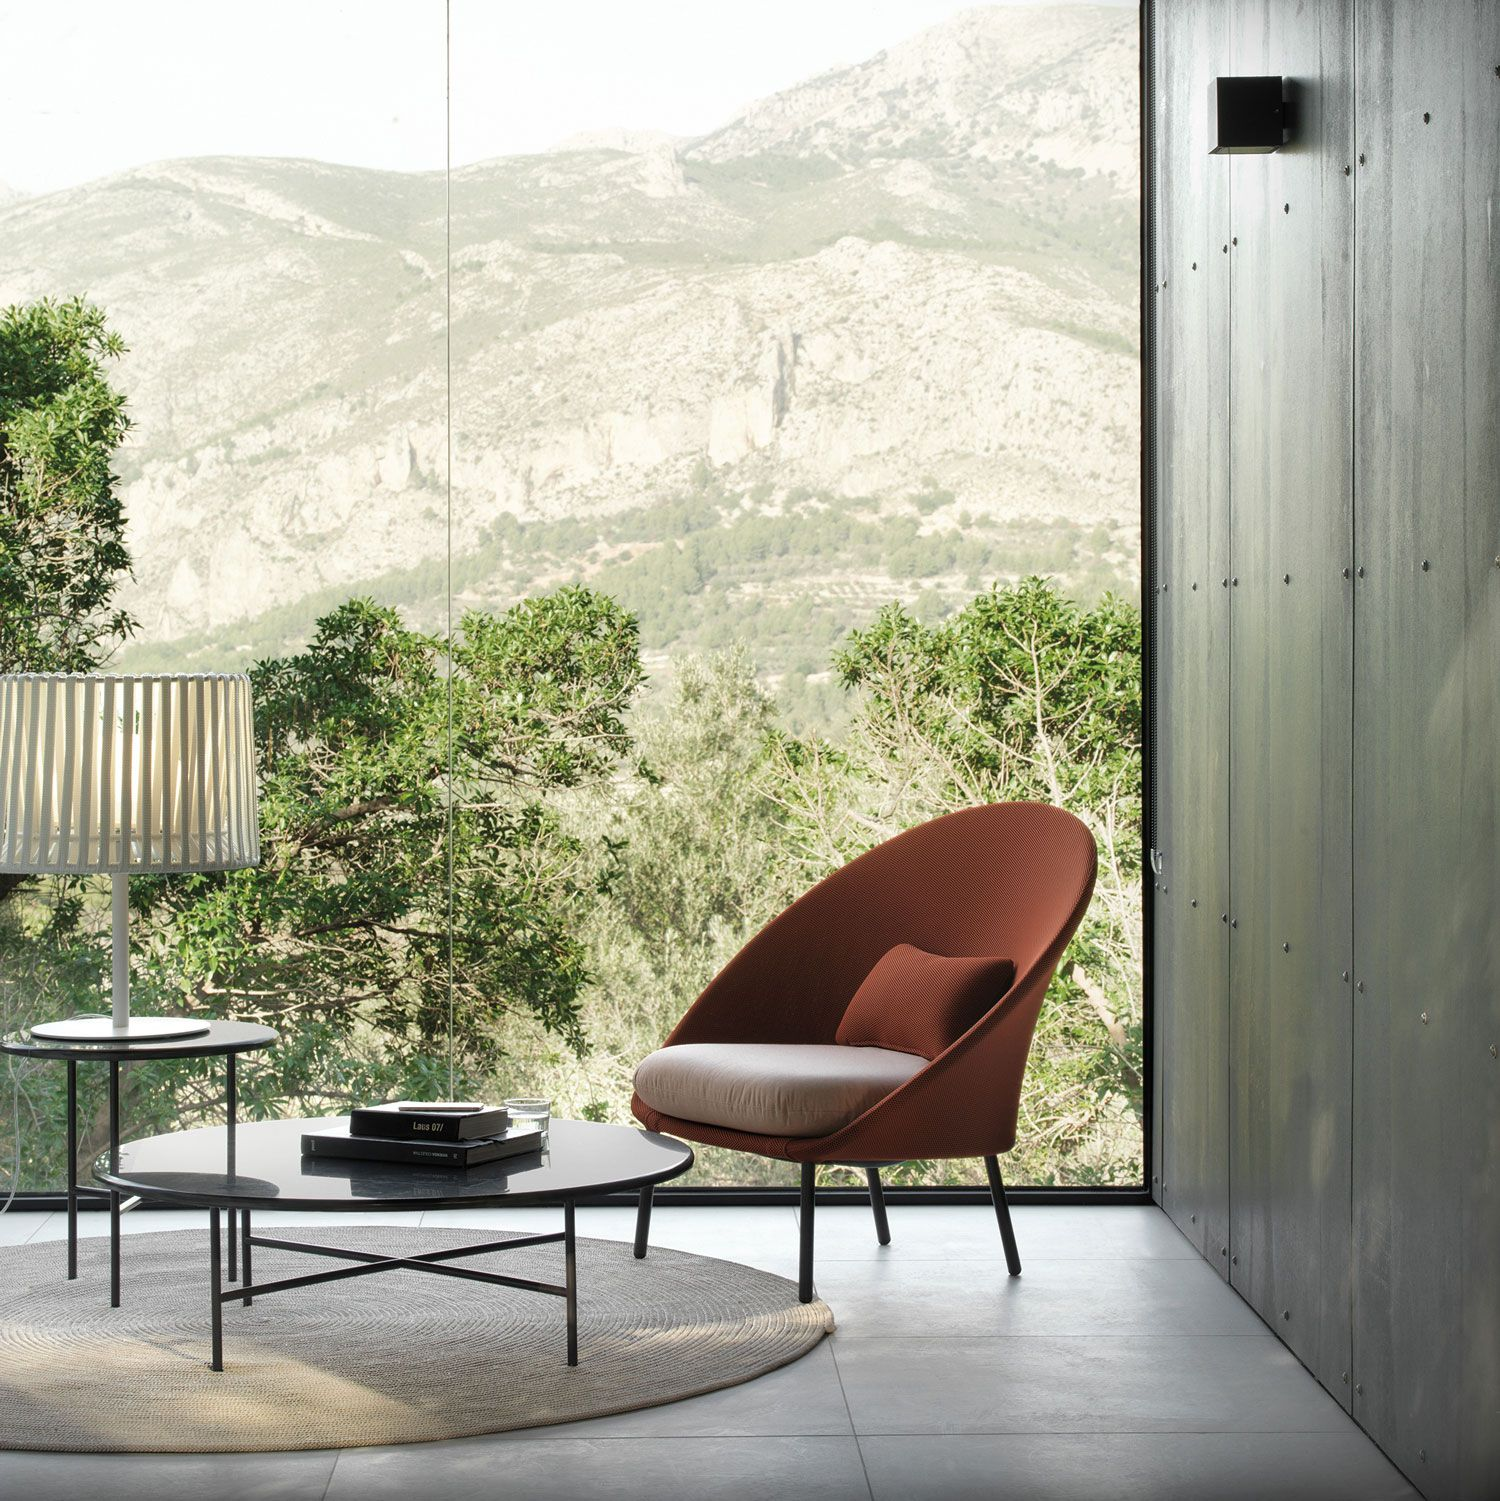 In Pursuit Of Beauty Inspiring Visit To Expormim Factory In Valencia Spain Lounge Chair Outdoor Luxury Italian Furniture Furniture Design [ 1501 x 1500 Pixel ]